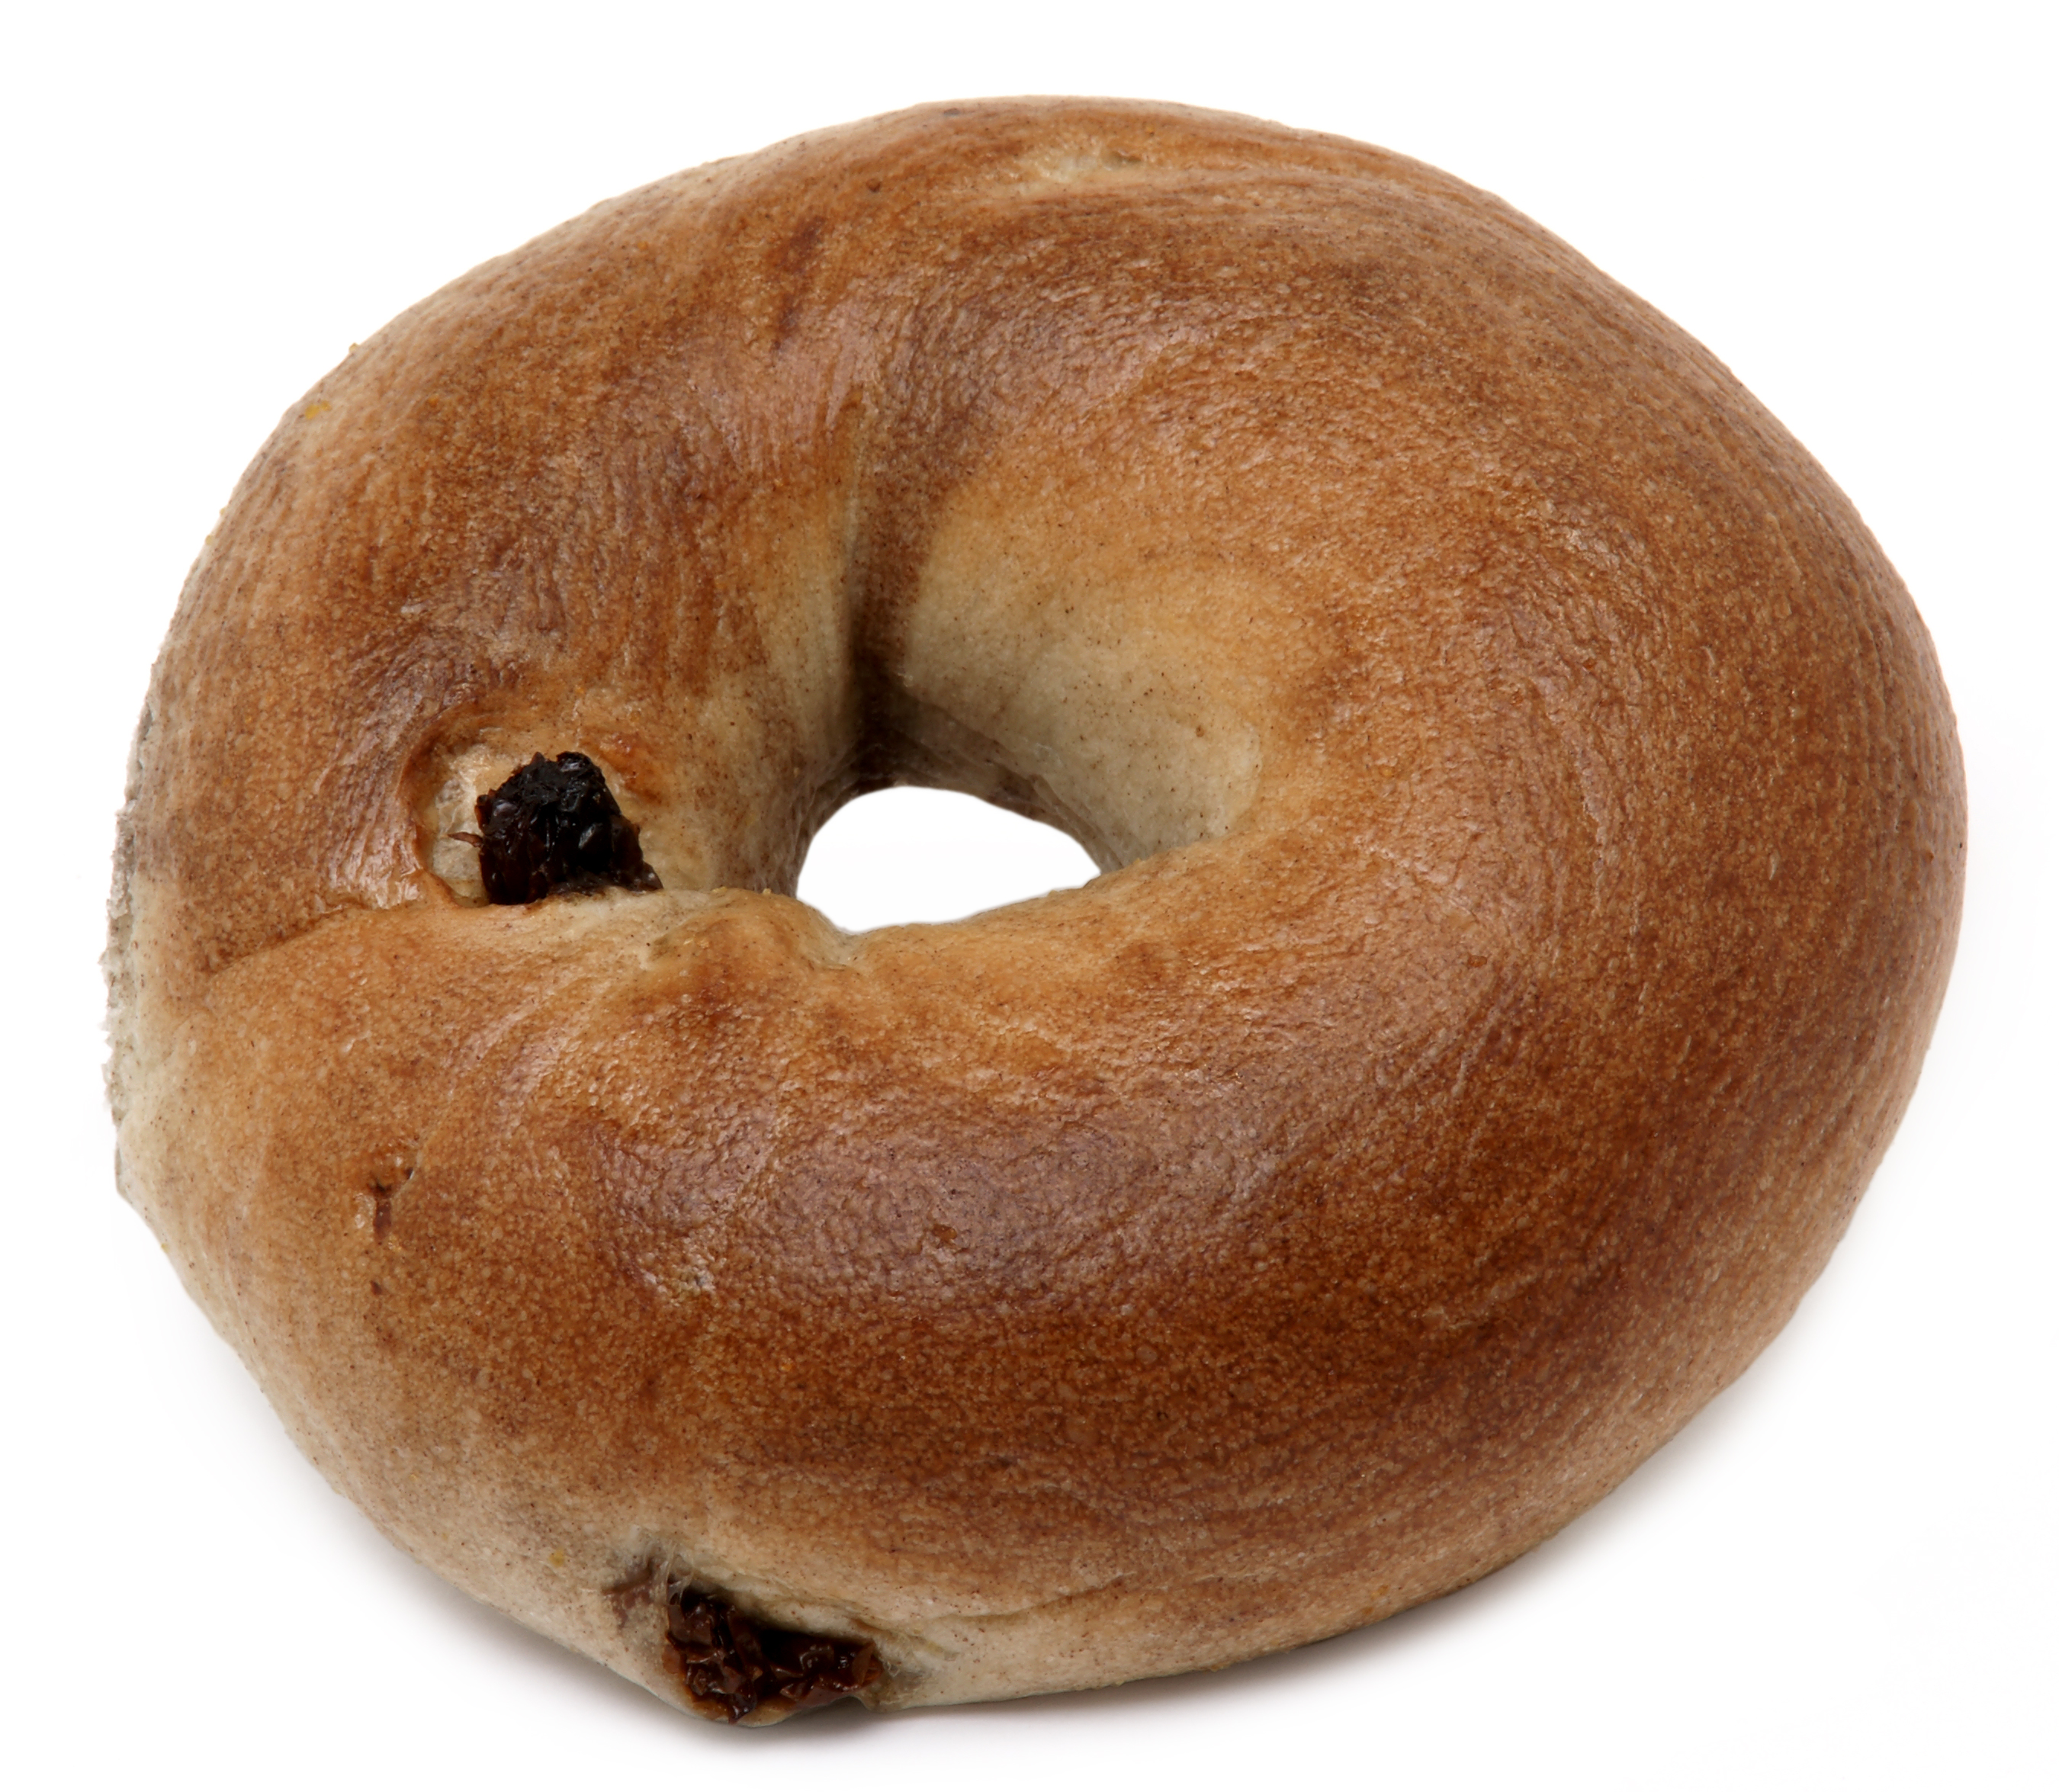 File:Cinnamon-Raisin-Bagel-Alt.jpg - Wikimedia Commons